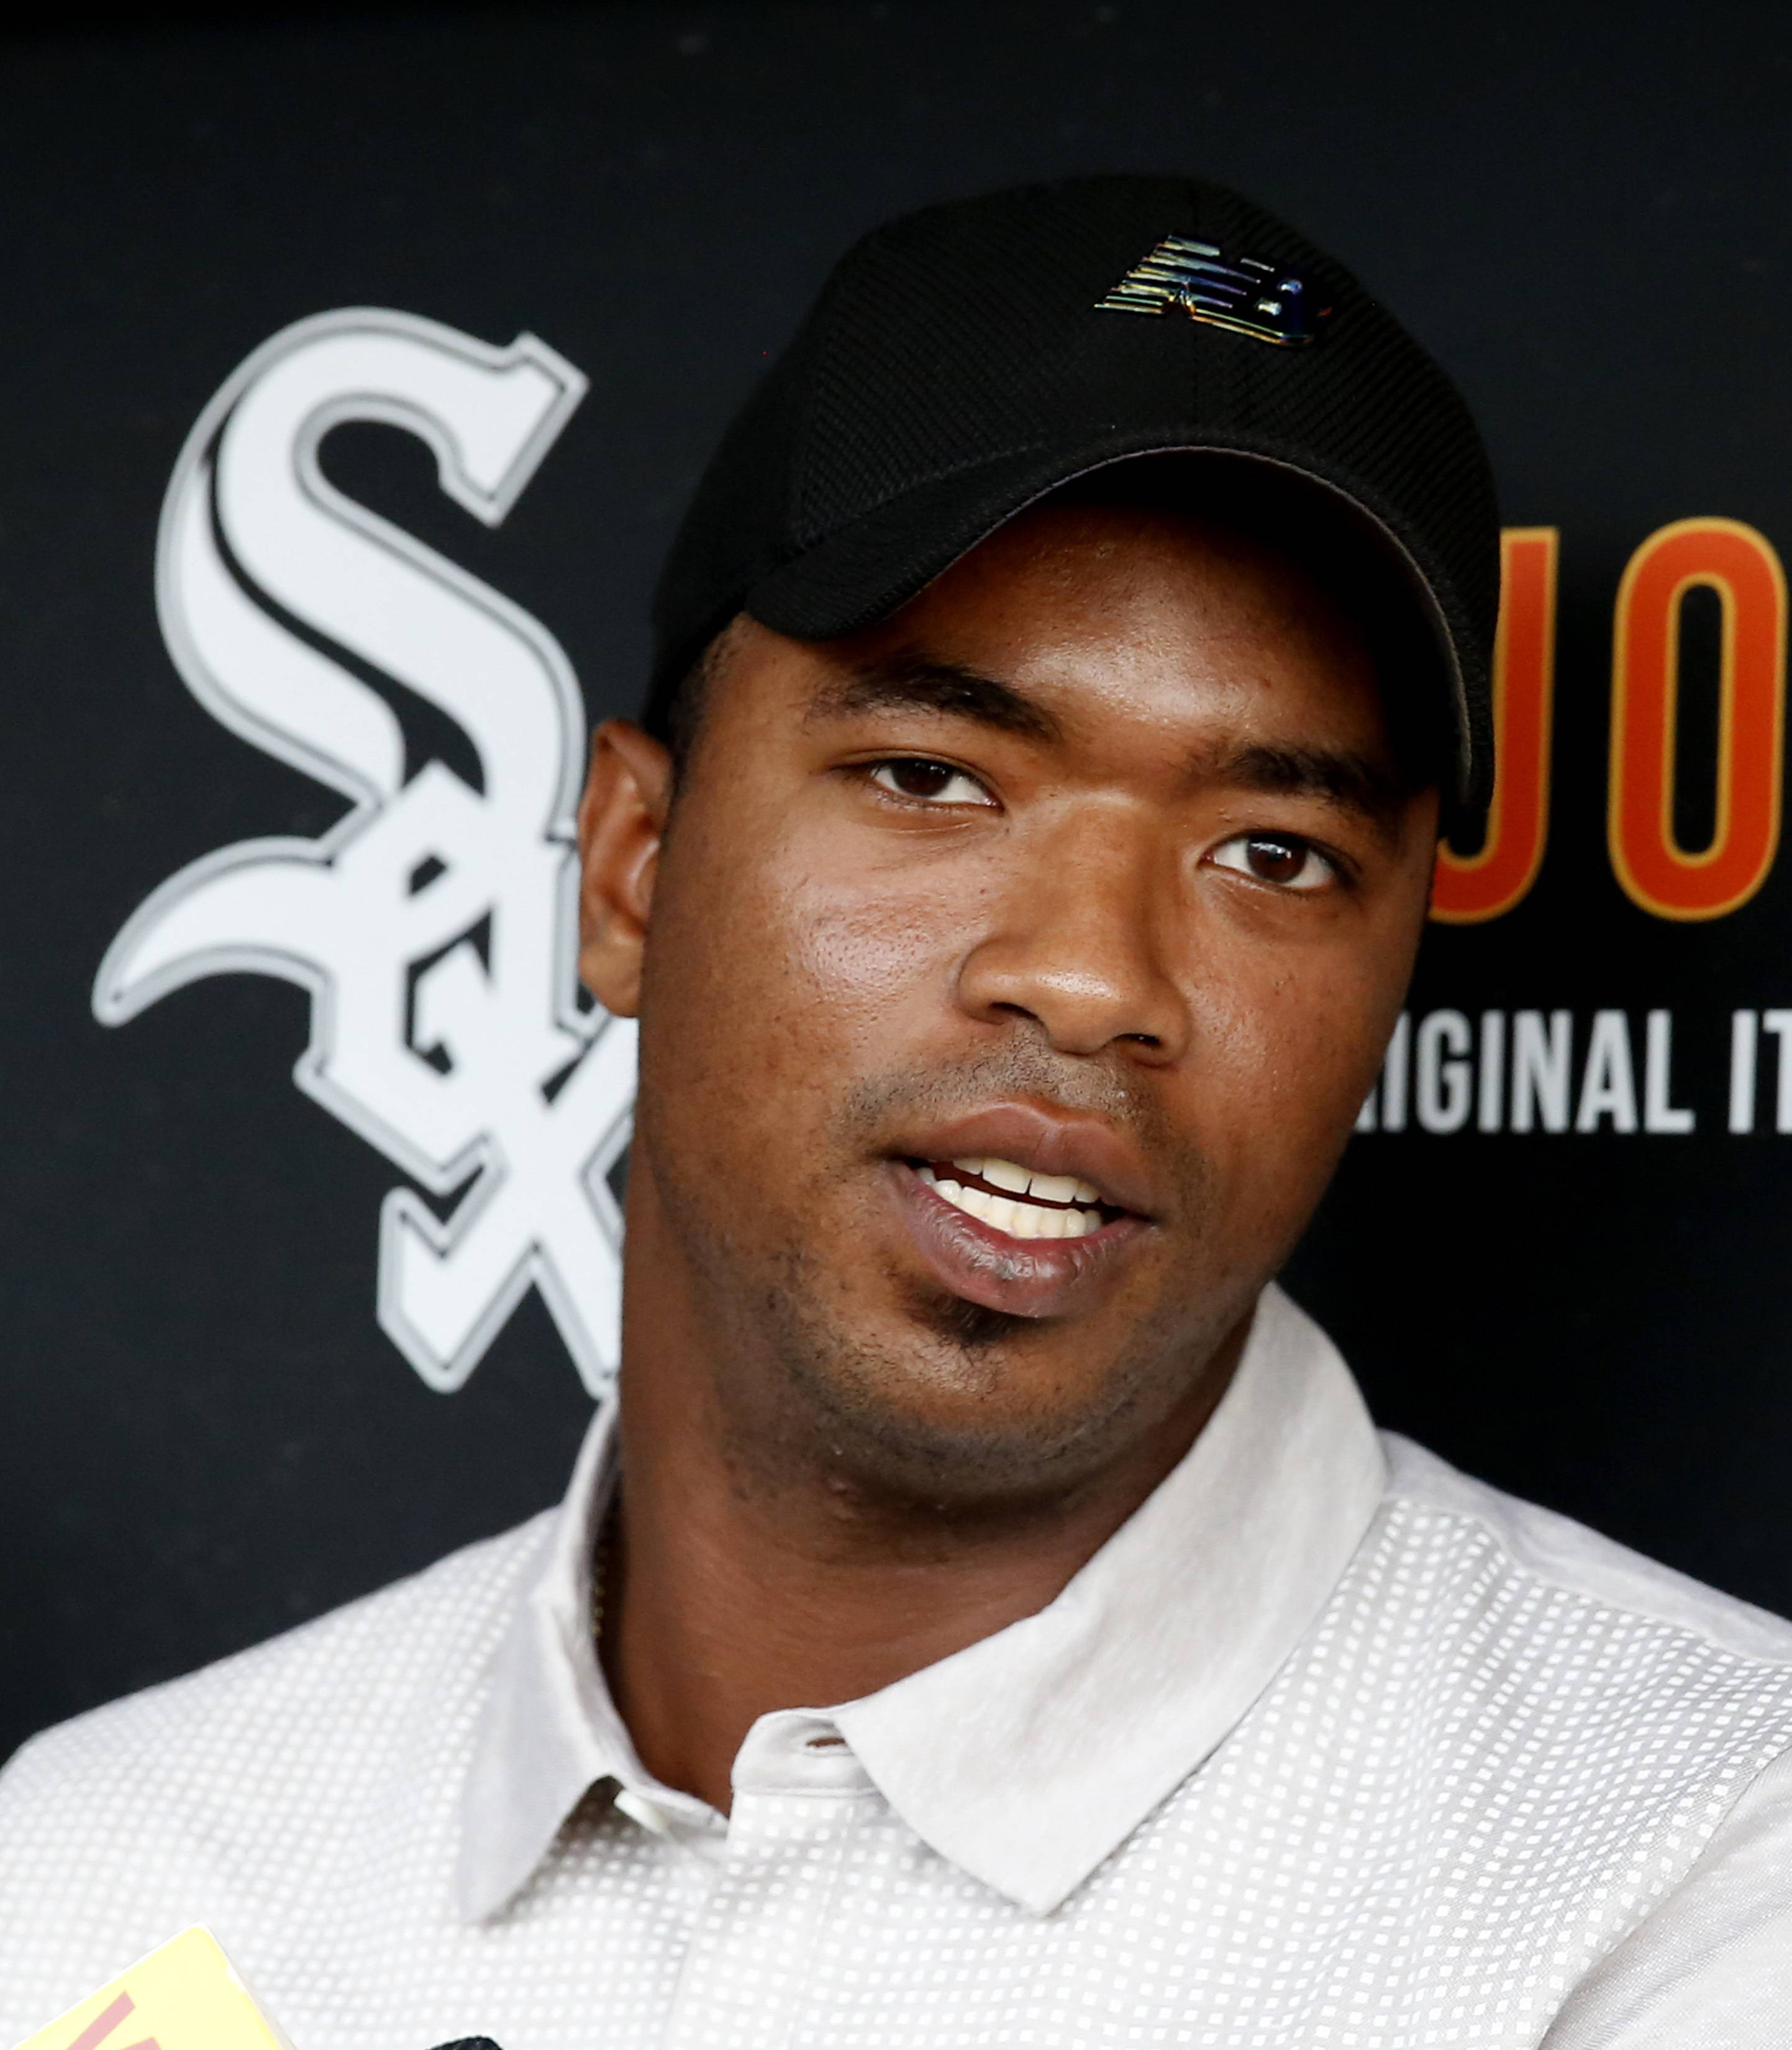 Eloy Jimenez, an outfielder with the Birmingham Barons, a Double-A affiliate of the Chicago White Sox, talks with reporters before a baseball game between the White Sox and the Cleveland Indians on Tuesday, Sept. 5, 2017, in Chicago. (AP Photo/Charles Rex Arbogast)